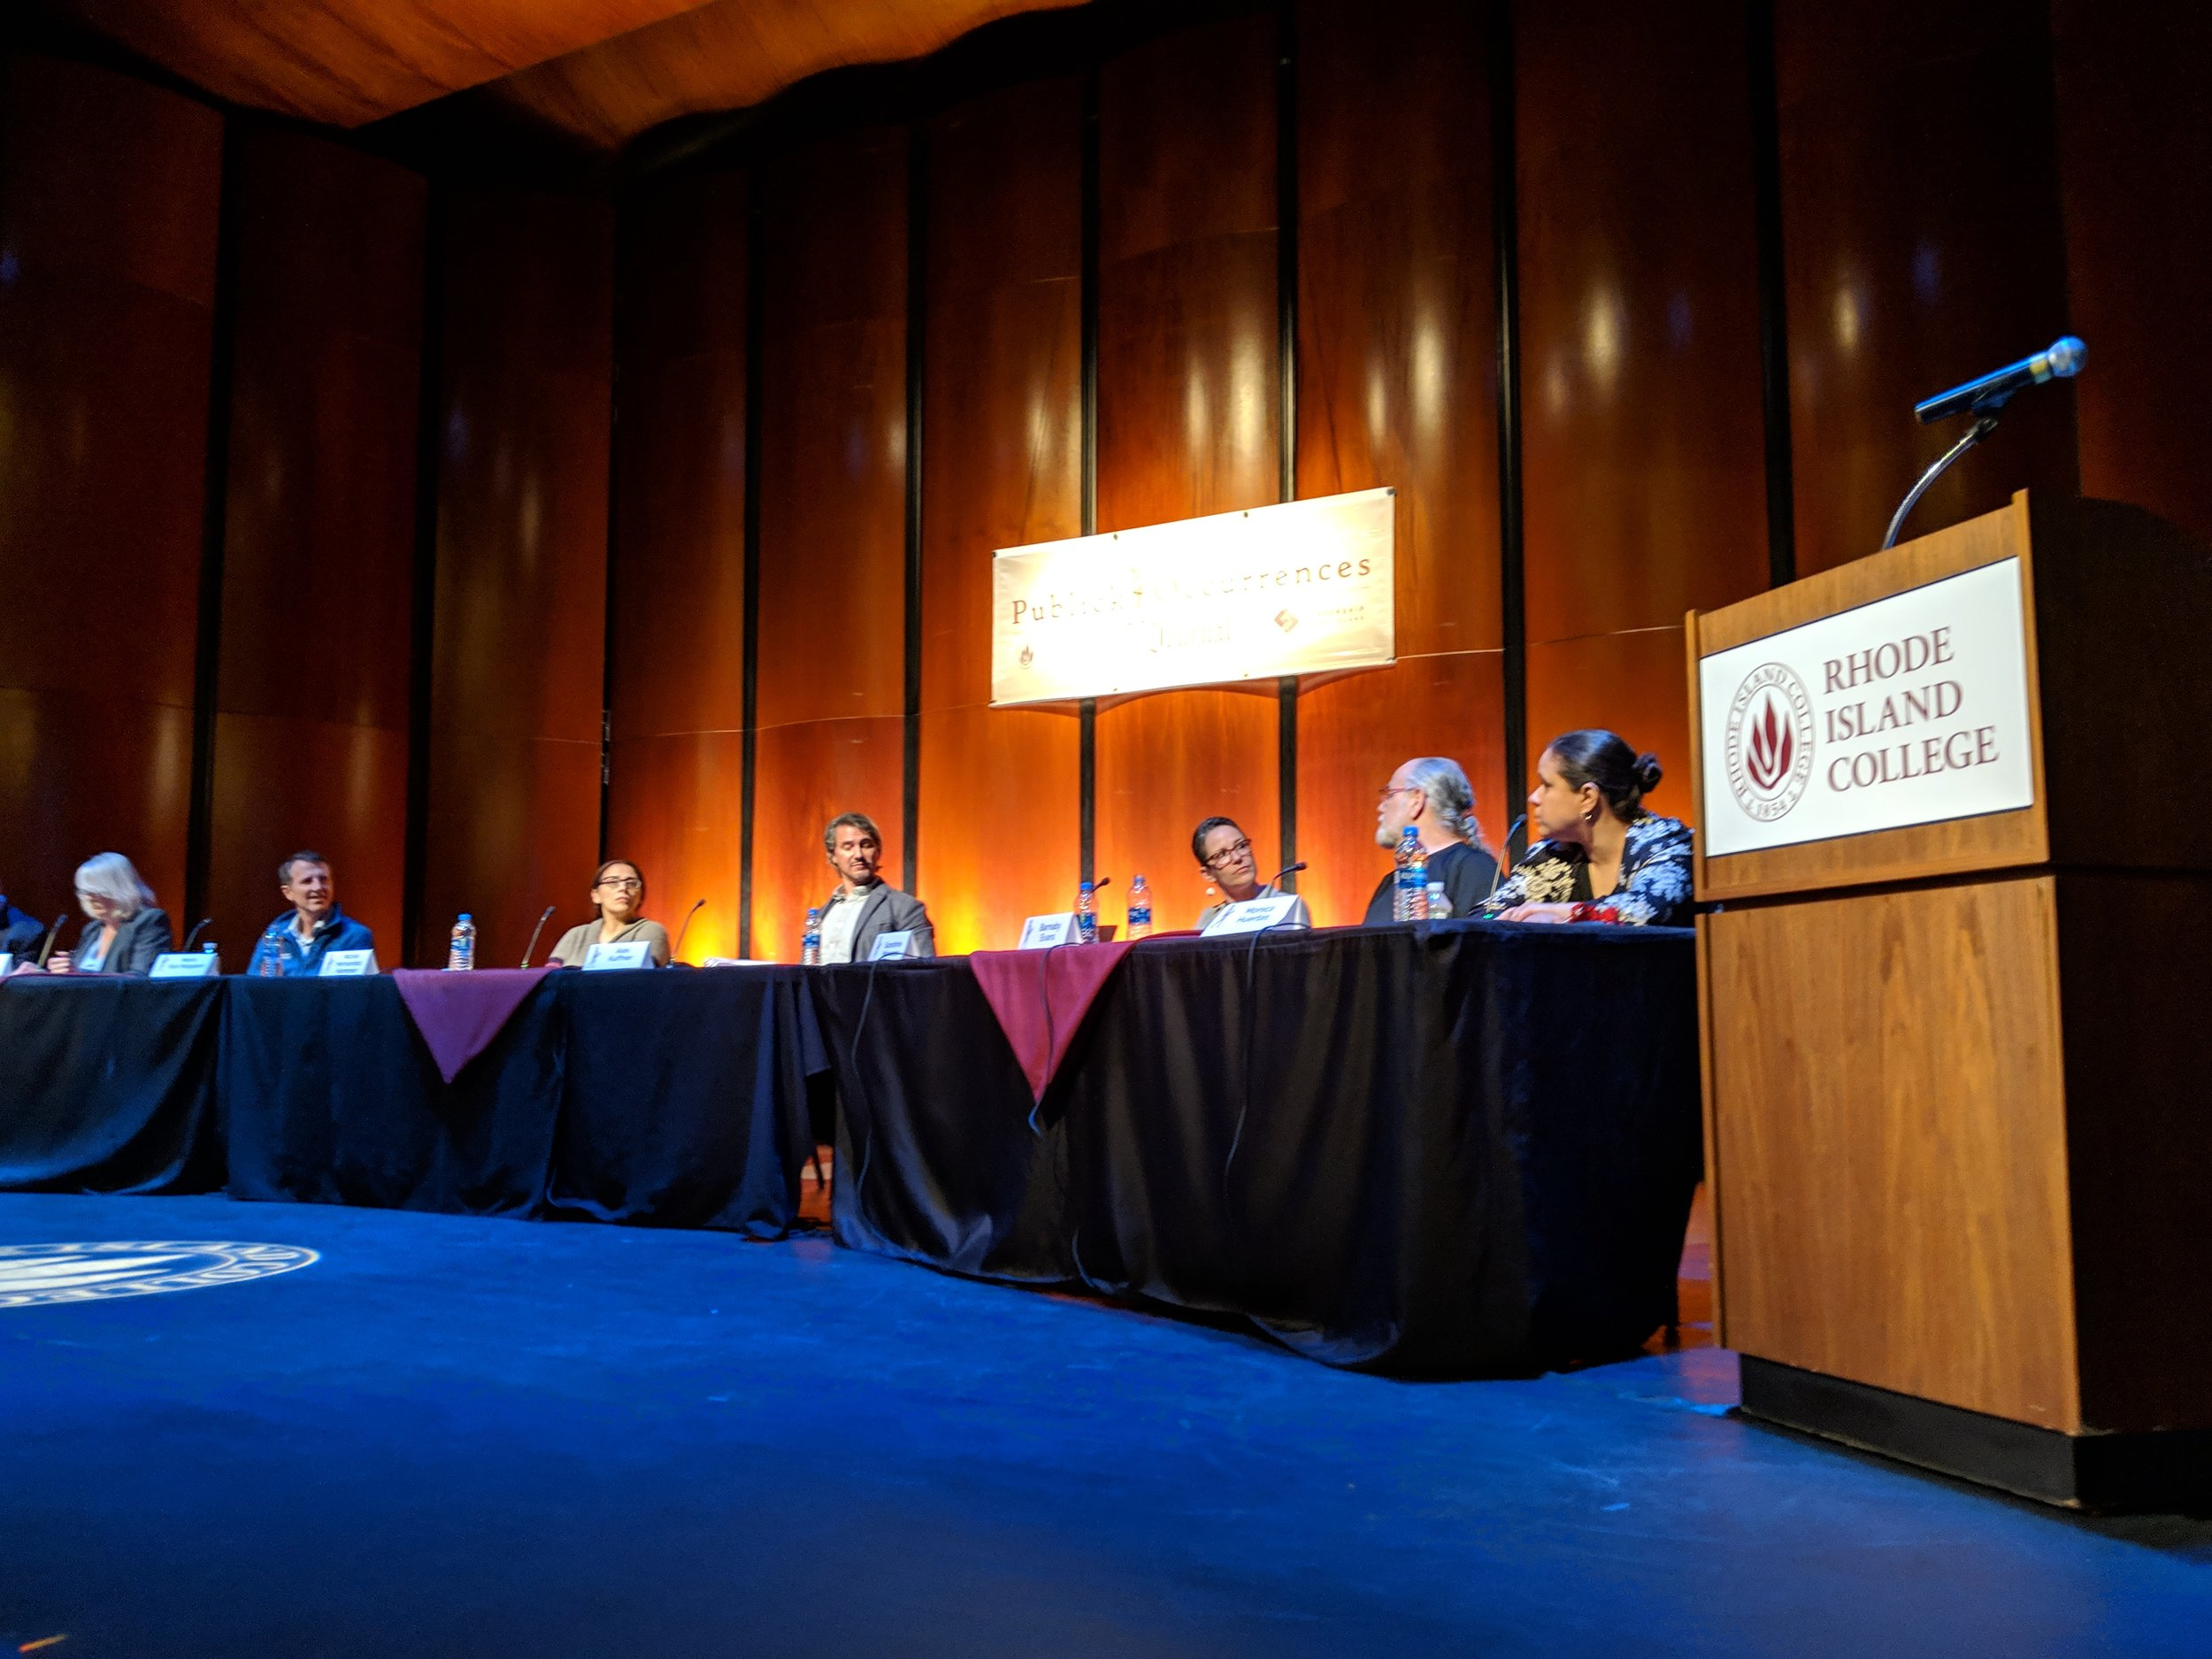 The Publick Occurrences panel at Rhode Island College. (Tim Faulkner/ecoRI News)